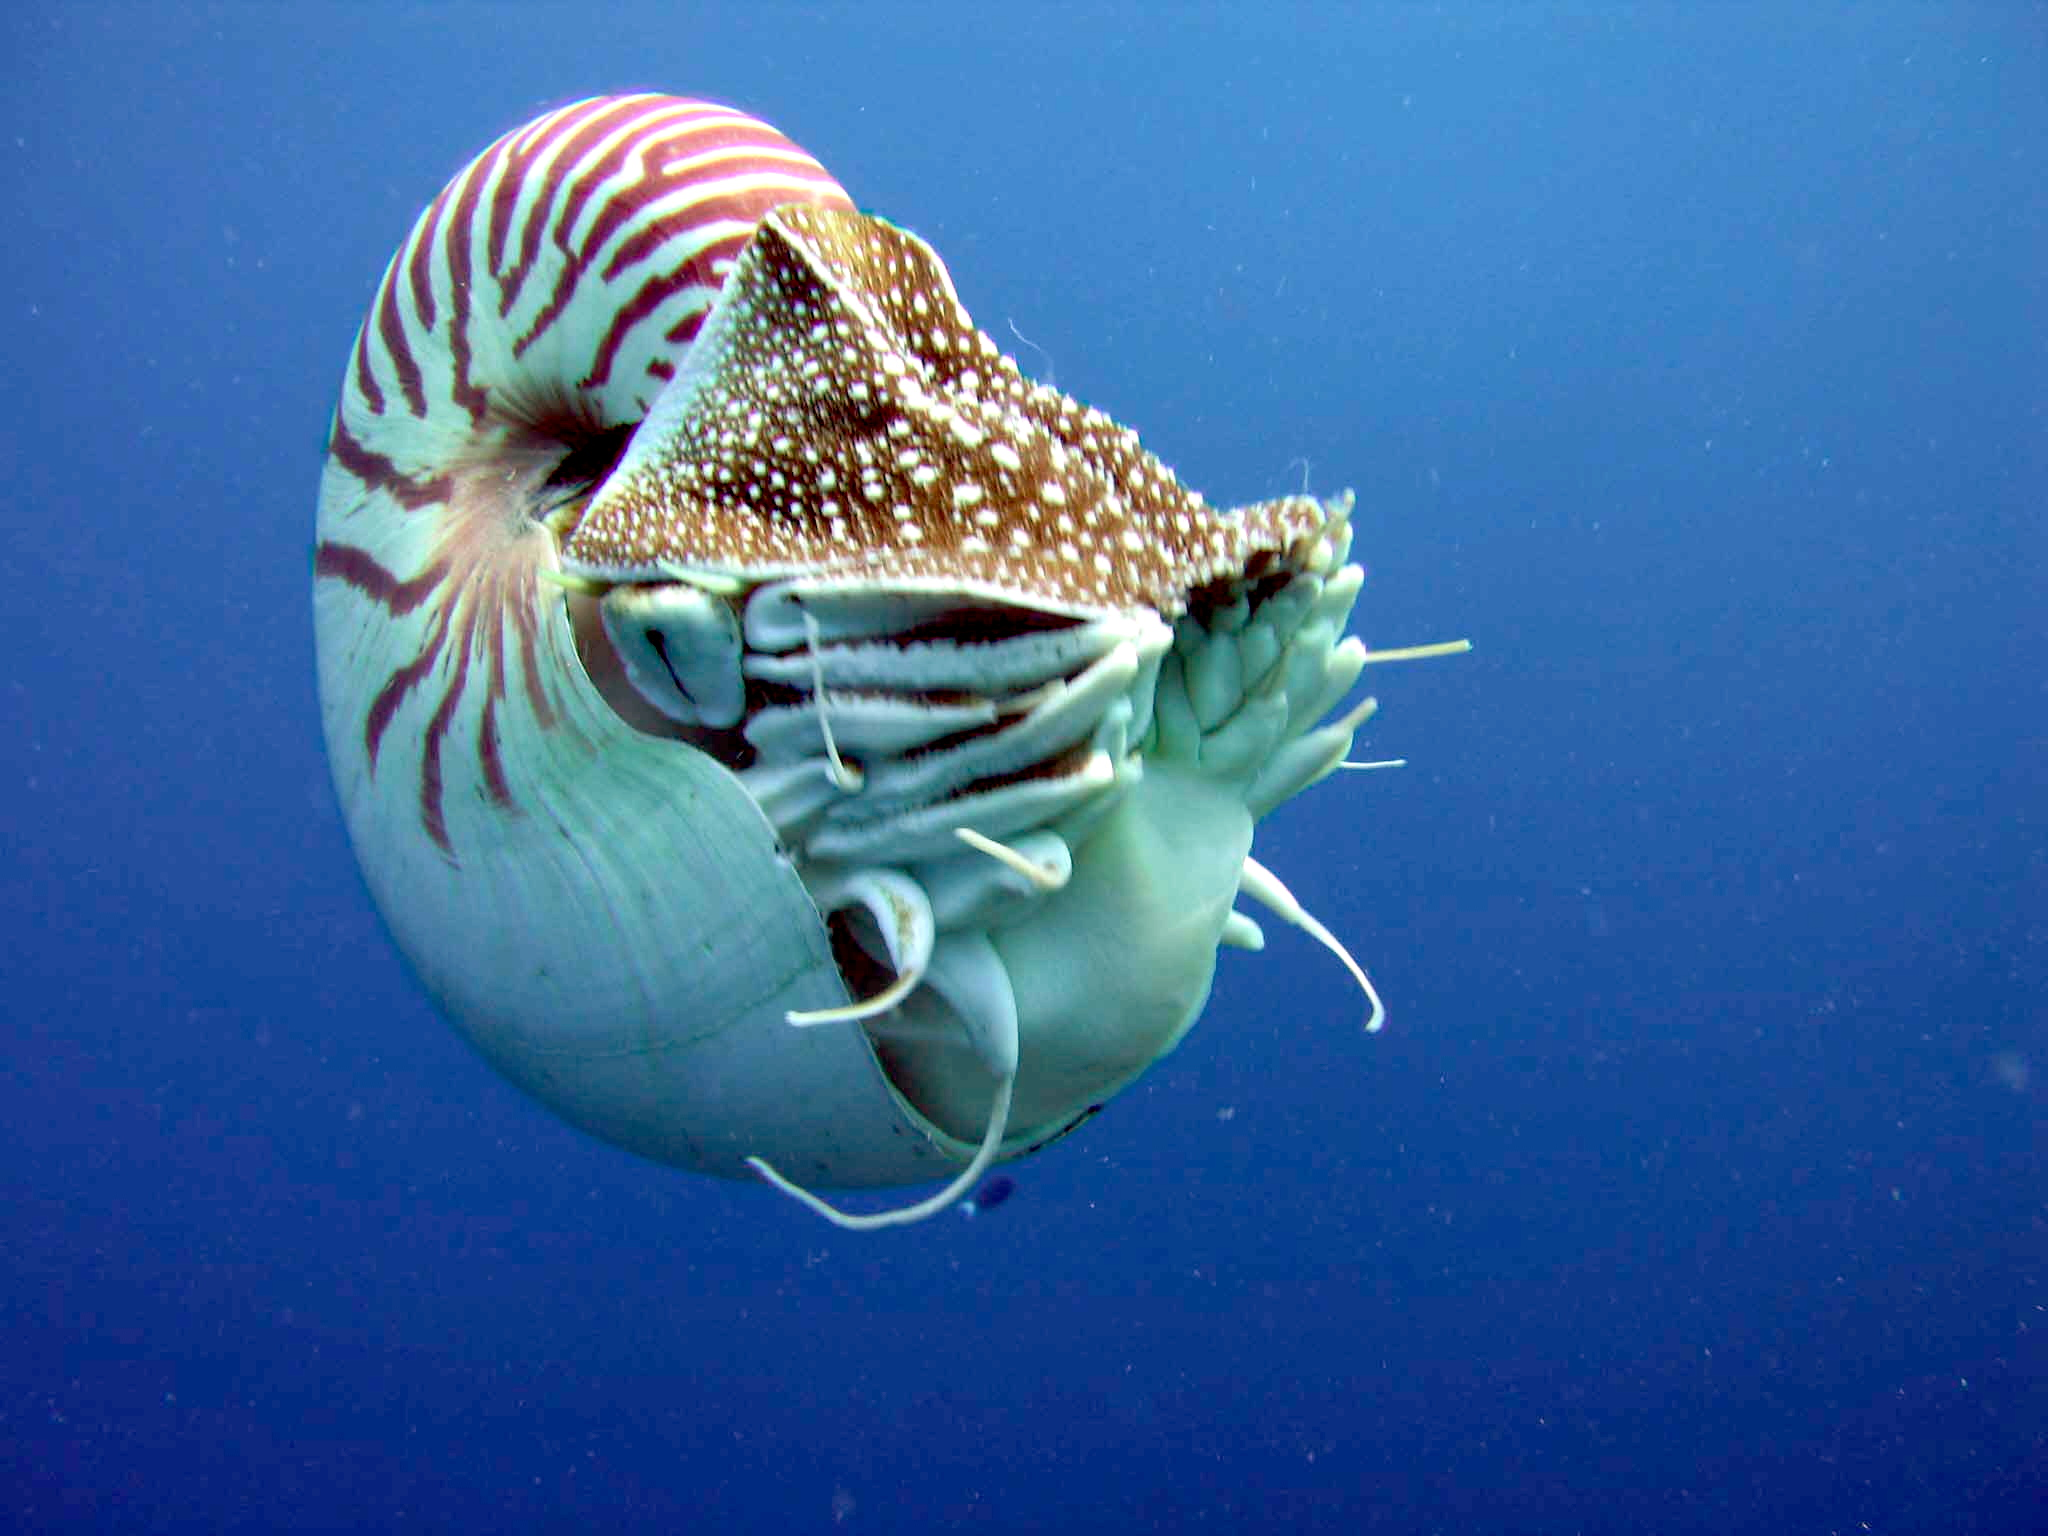 Side view of chambered nautilus showing pinhole eye, tentacles, shell, operculum, and siphon